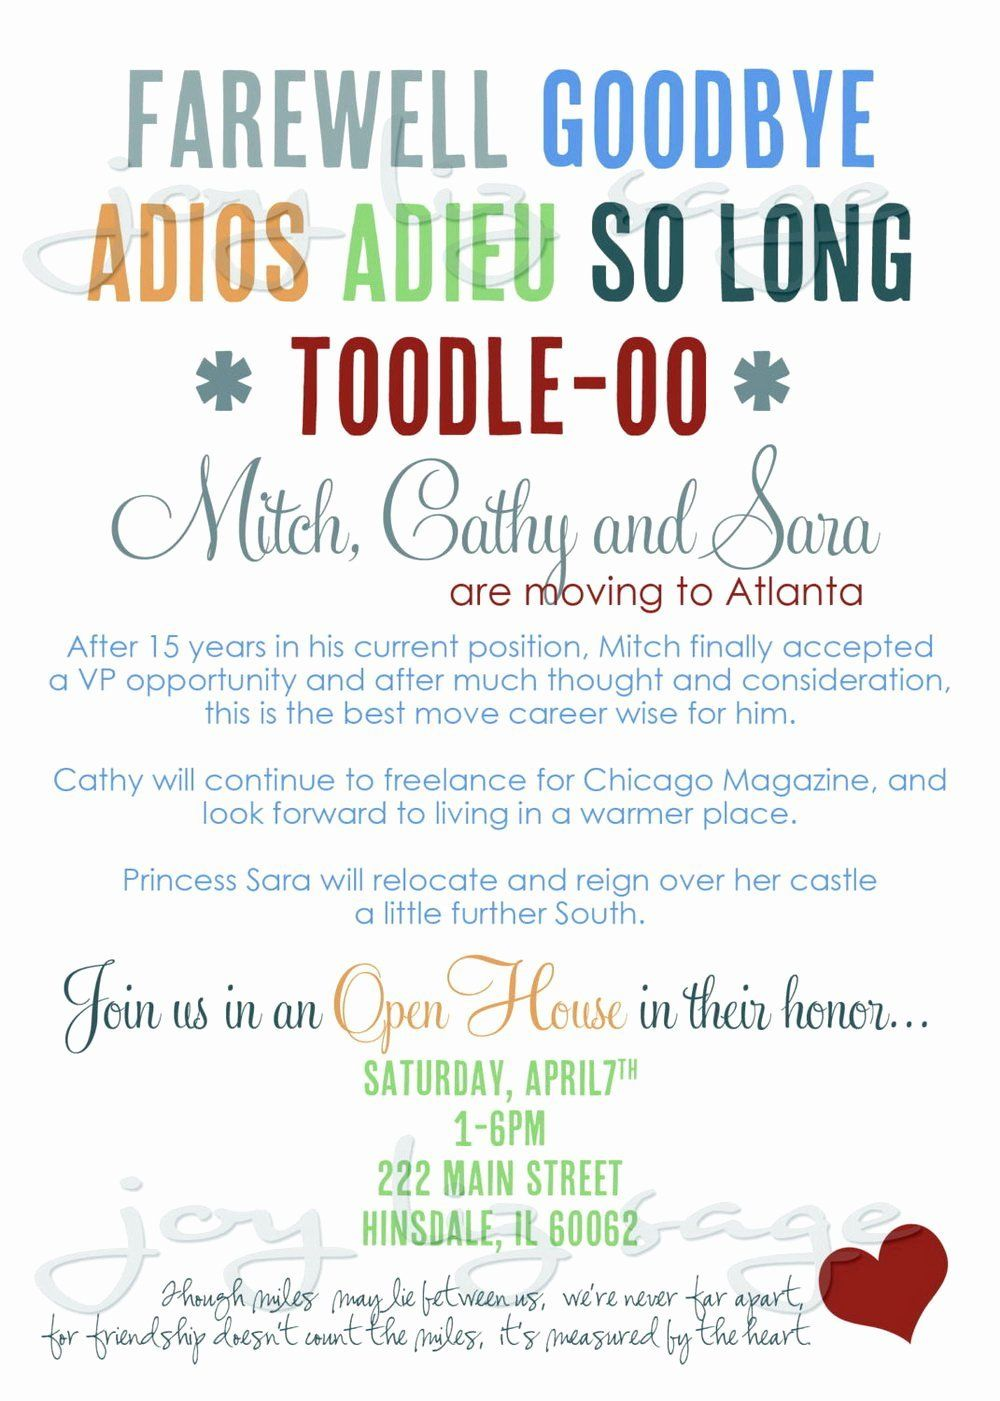 Free Printable Goodbye Cards Elegant 006 Farewell Partys Templates Template Ideas C Party Invite Template Going Away Party Invitations Dinner Party Invitations Going away flyer template free